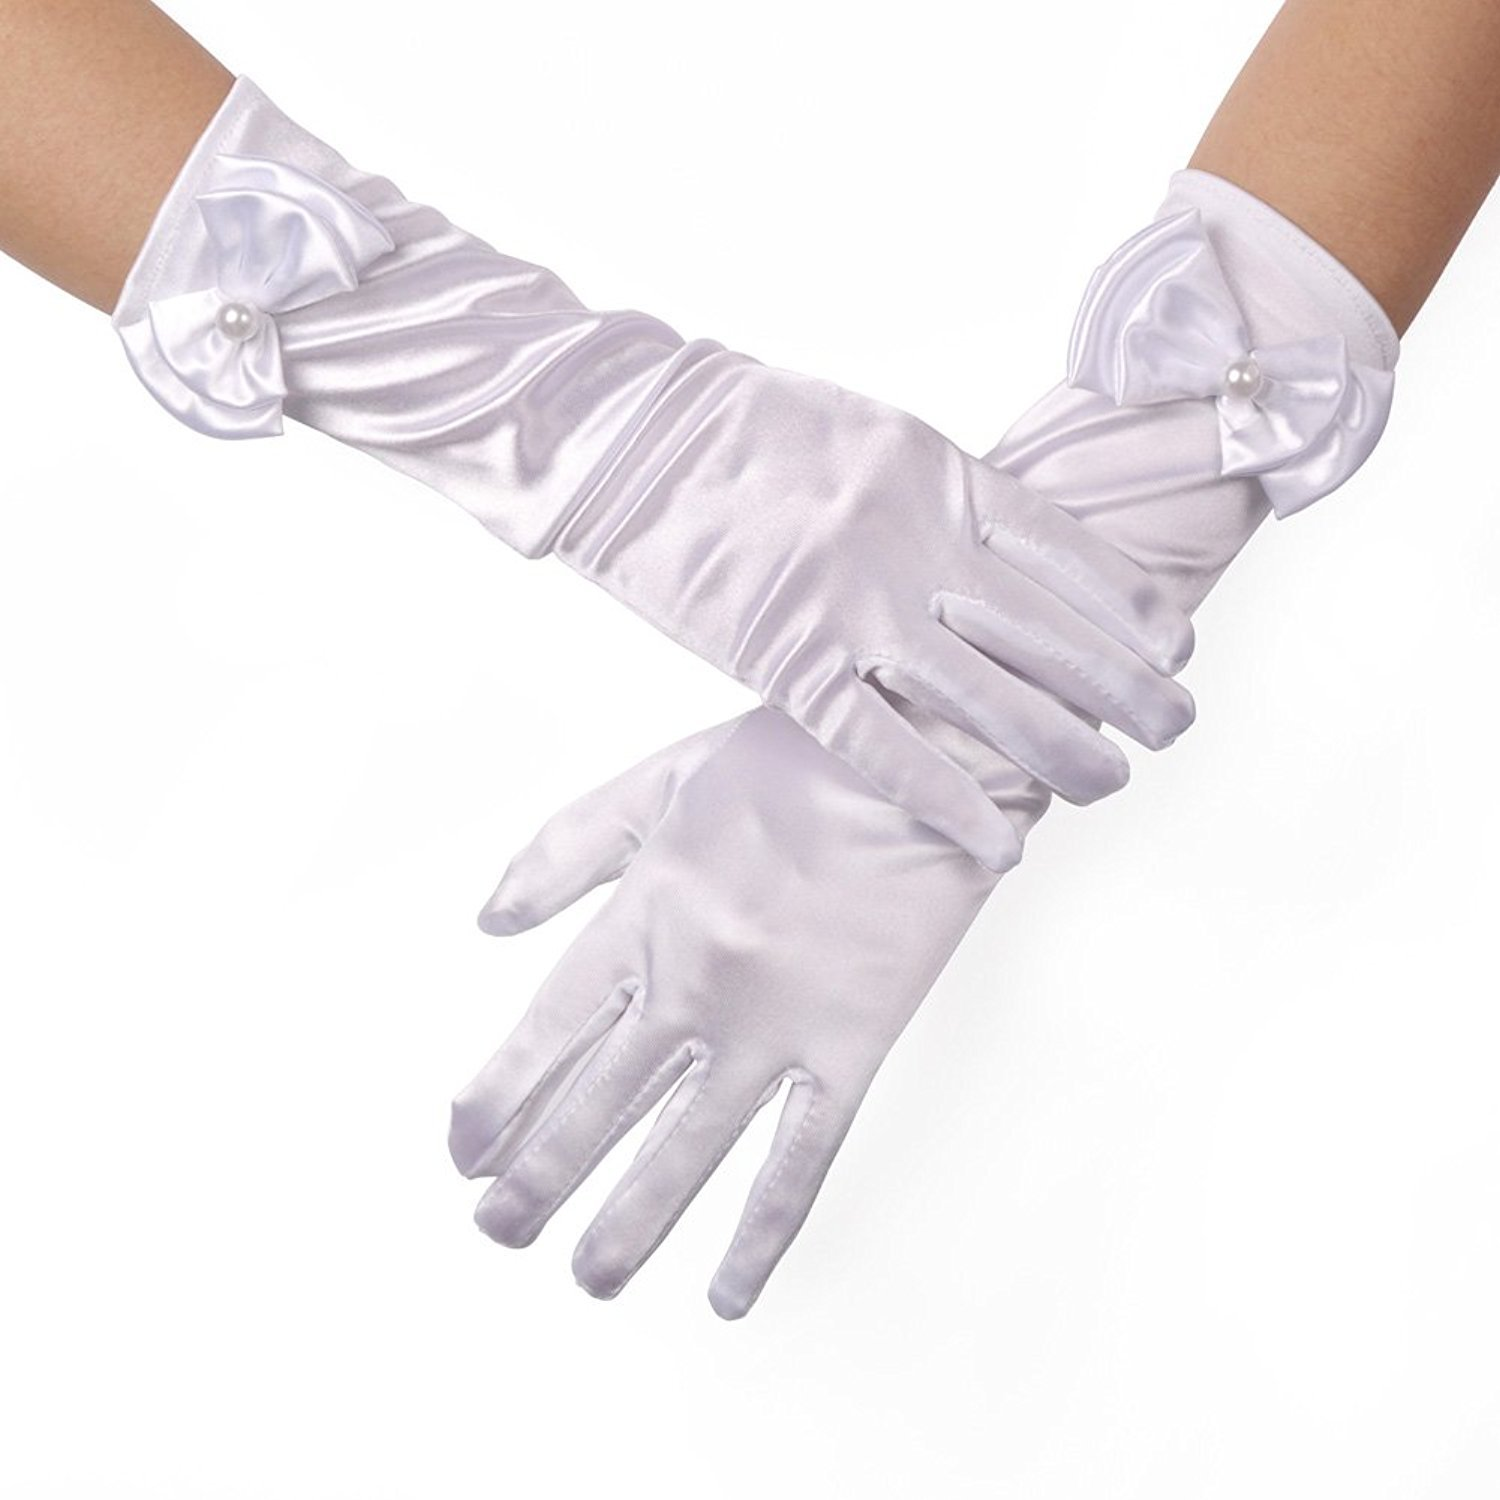 Castle Fairy Girls Lace Faux Pearl Fishnet Gloves Communion Flower Girl Bride Party Ceremony Accessories (white)